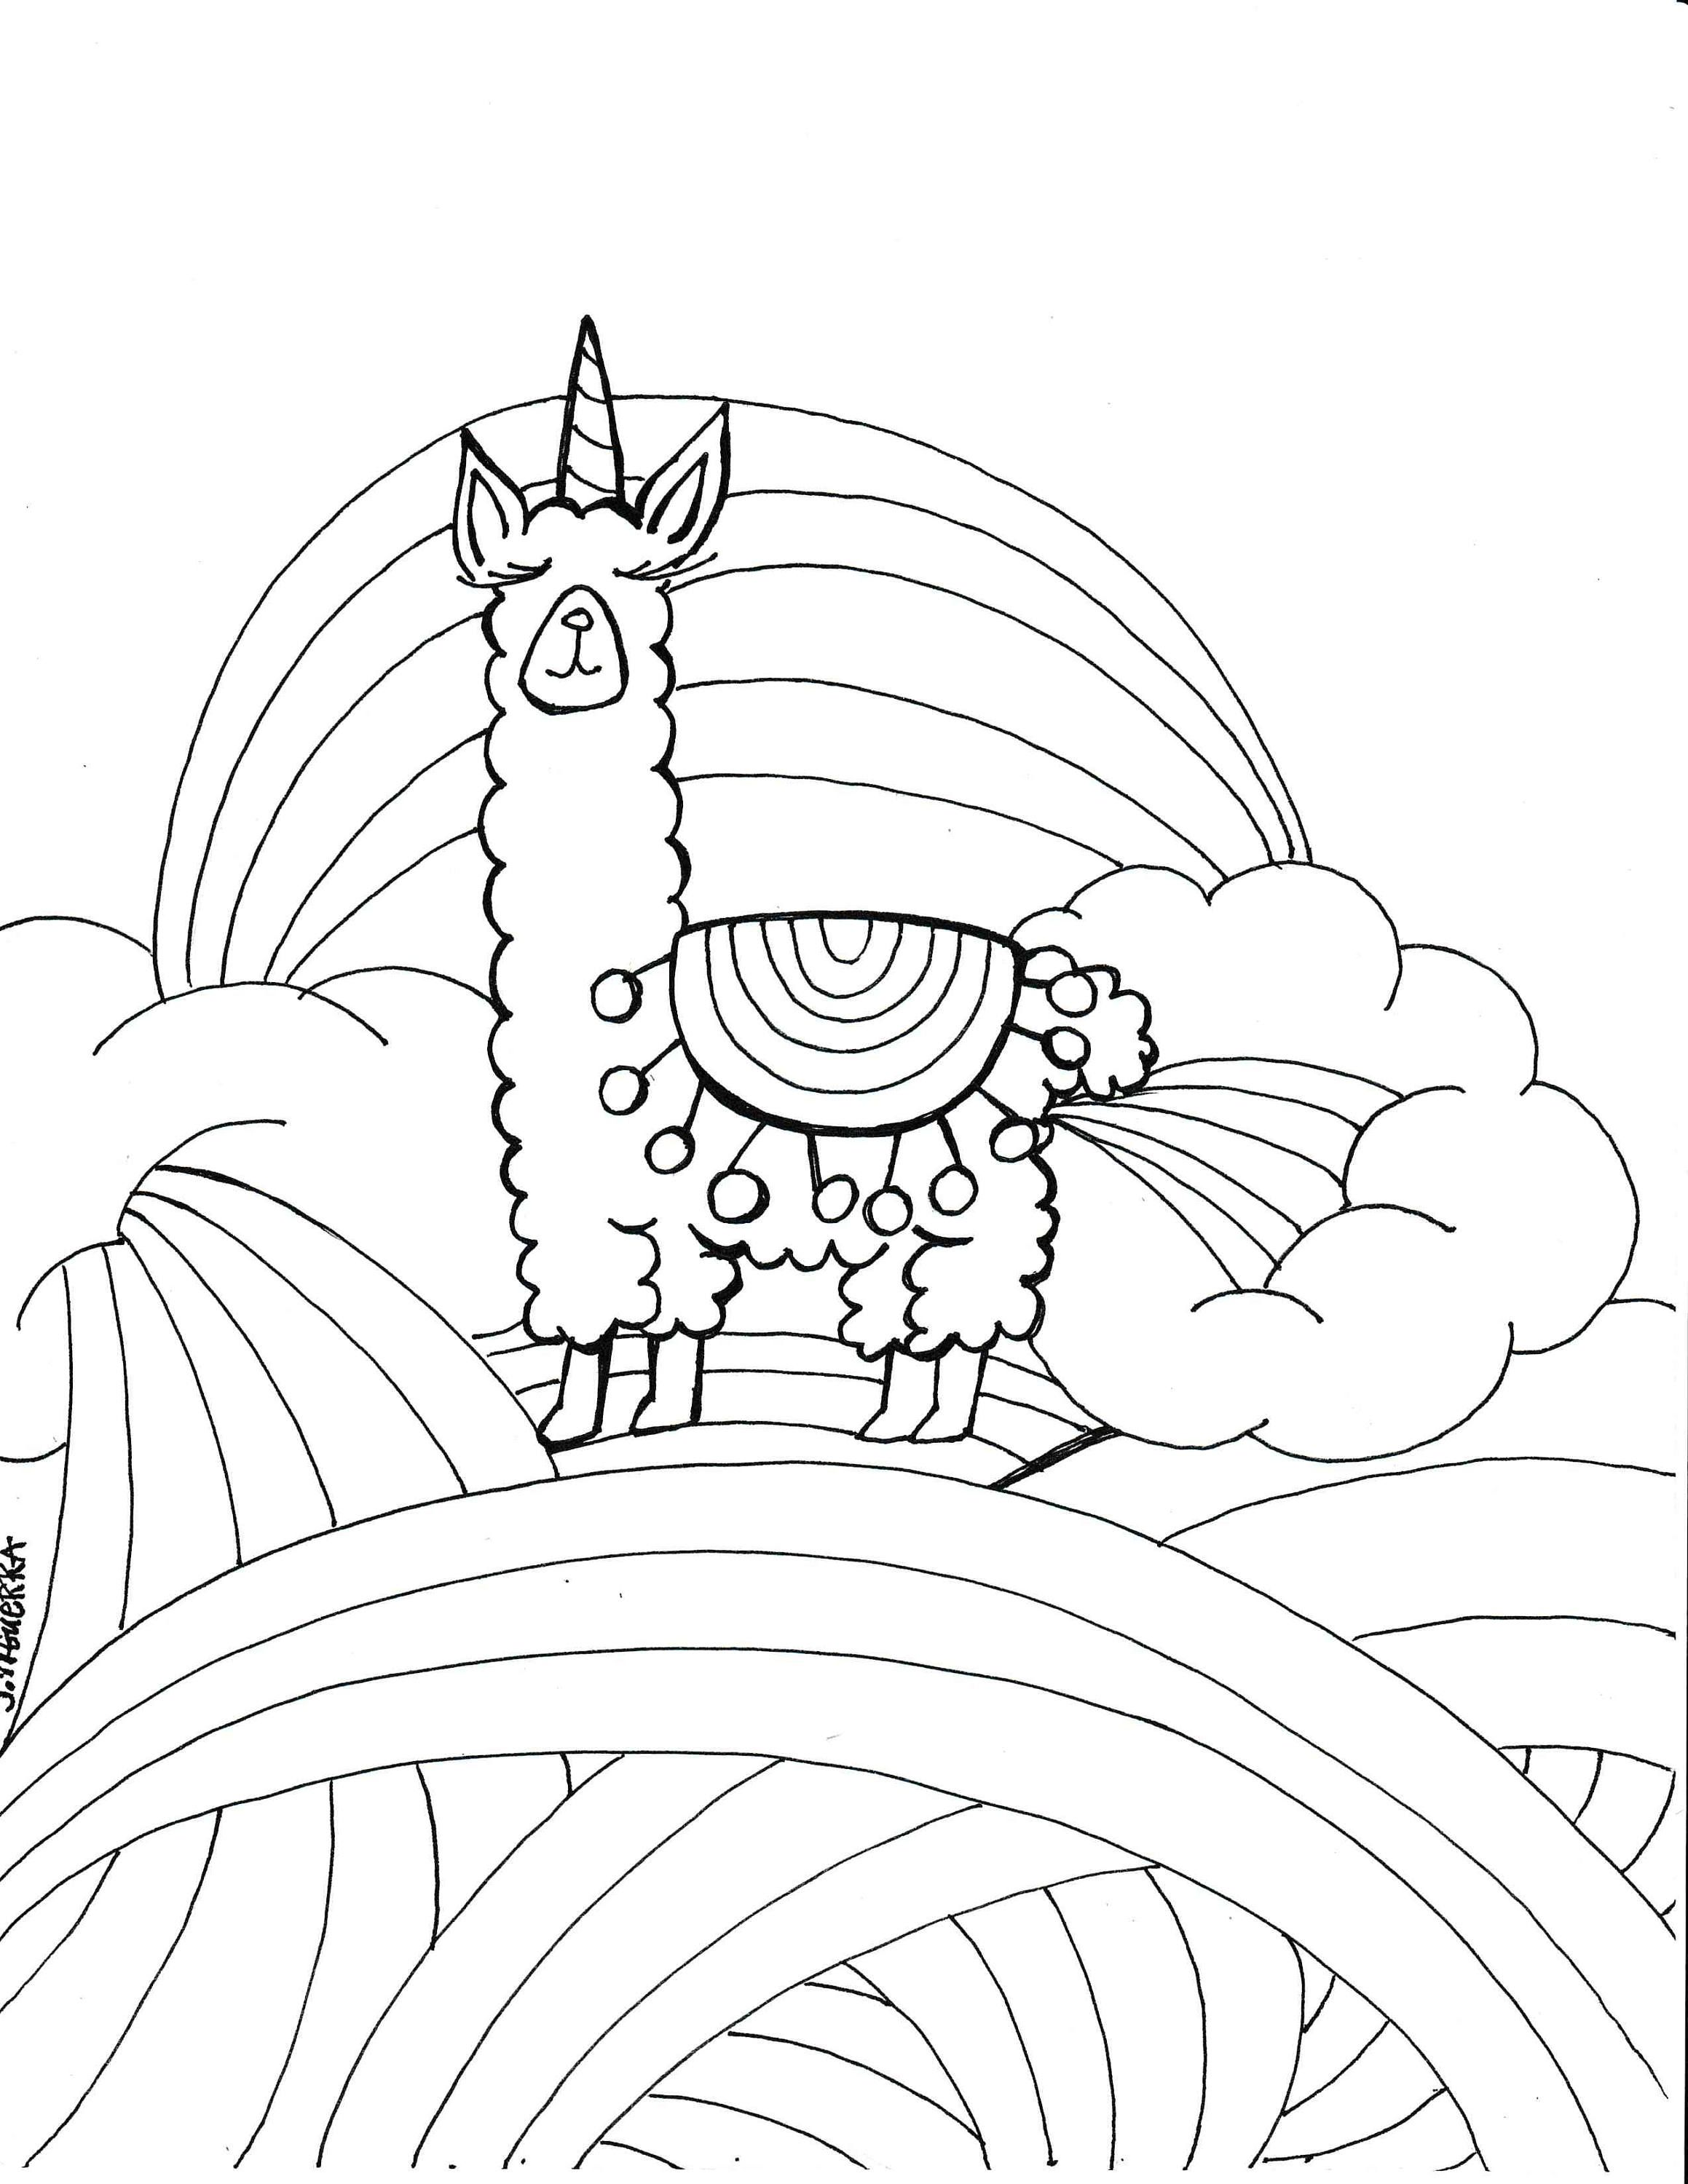 Llamacorn Coloring Page Pdf Printable Art By Journalingart On Etsy Stitch Coloring Pages Cartoon Coloring Pages Animal Coloring Pages